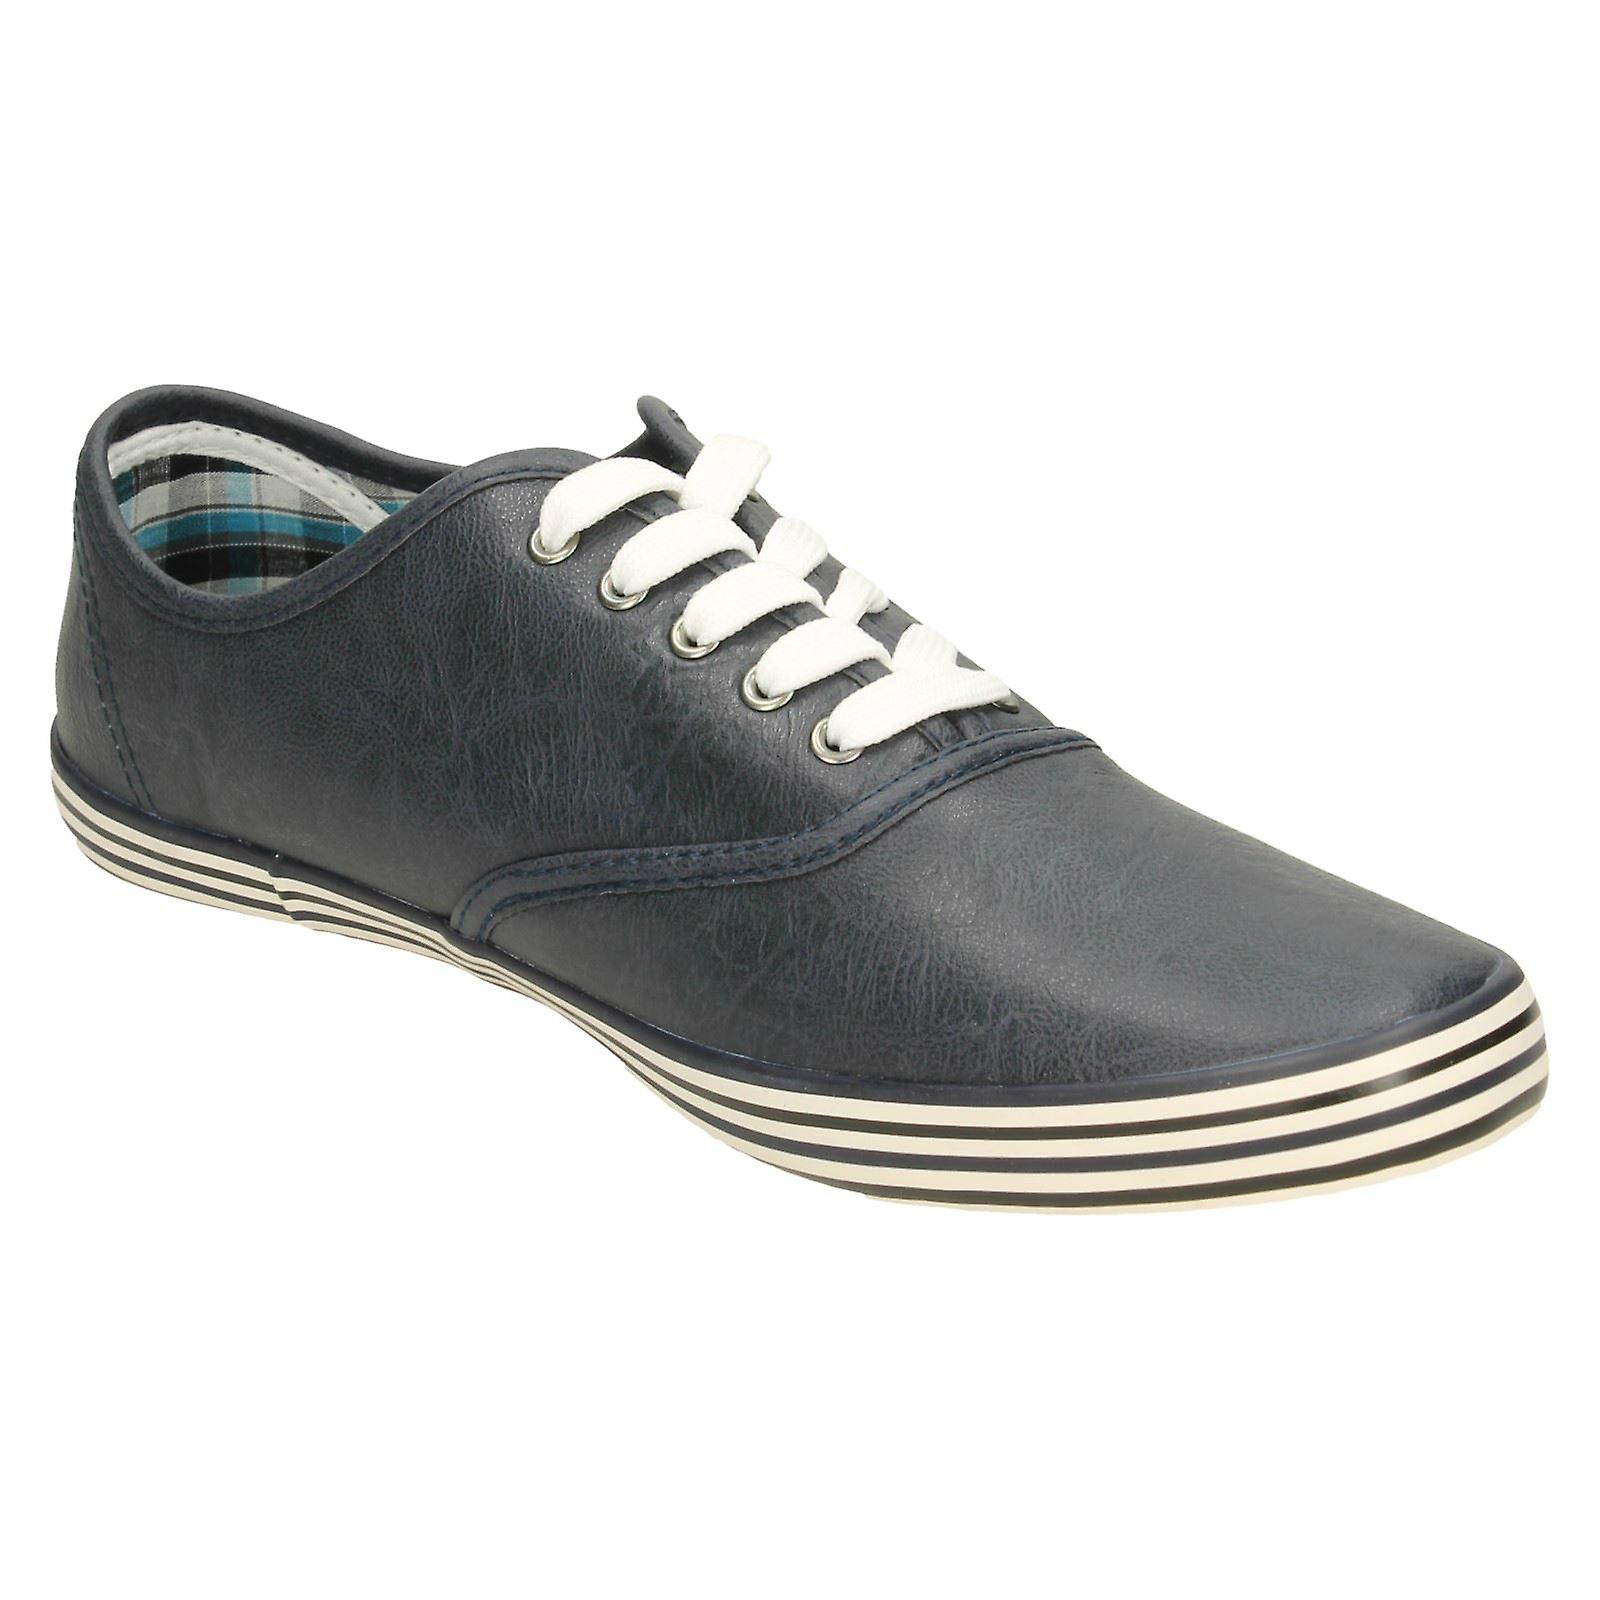 Mens Spot On Flat Lace Up Shoes